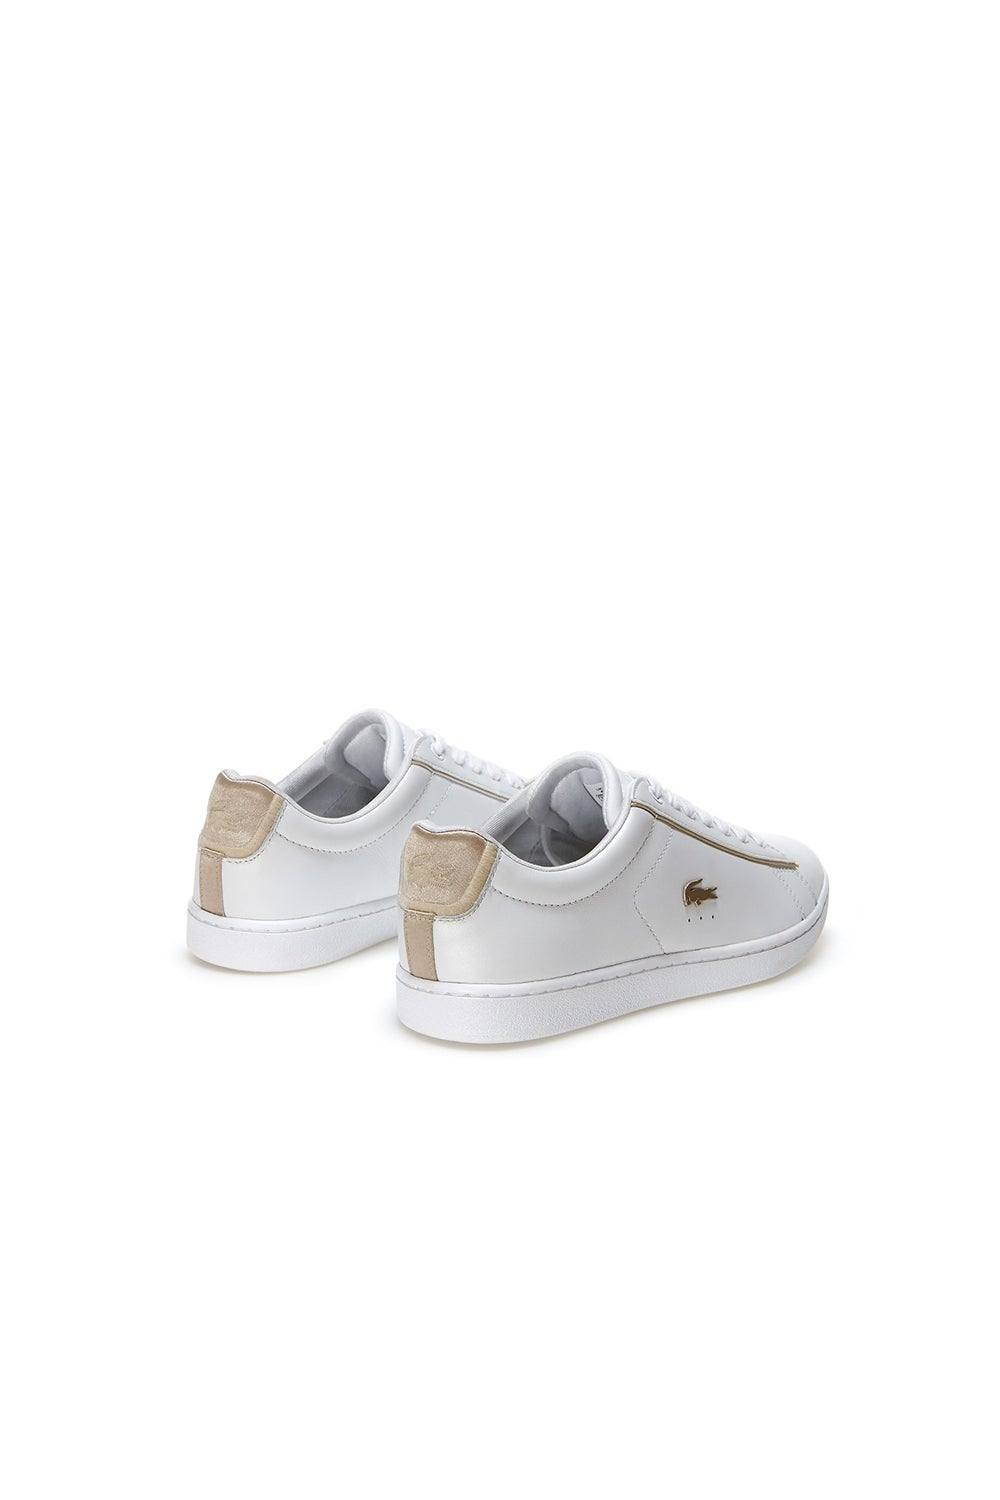 Lacoste Carnaby Evo Contrast Leather Trainers